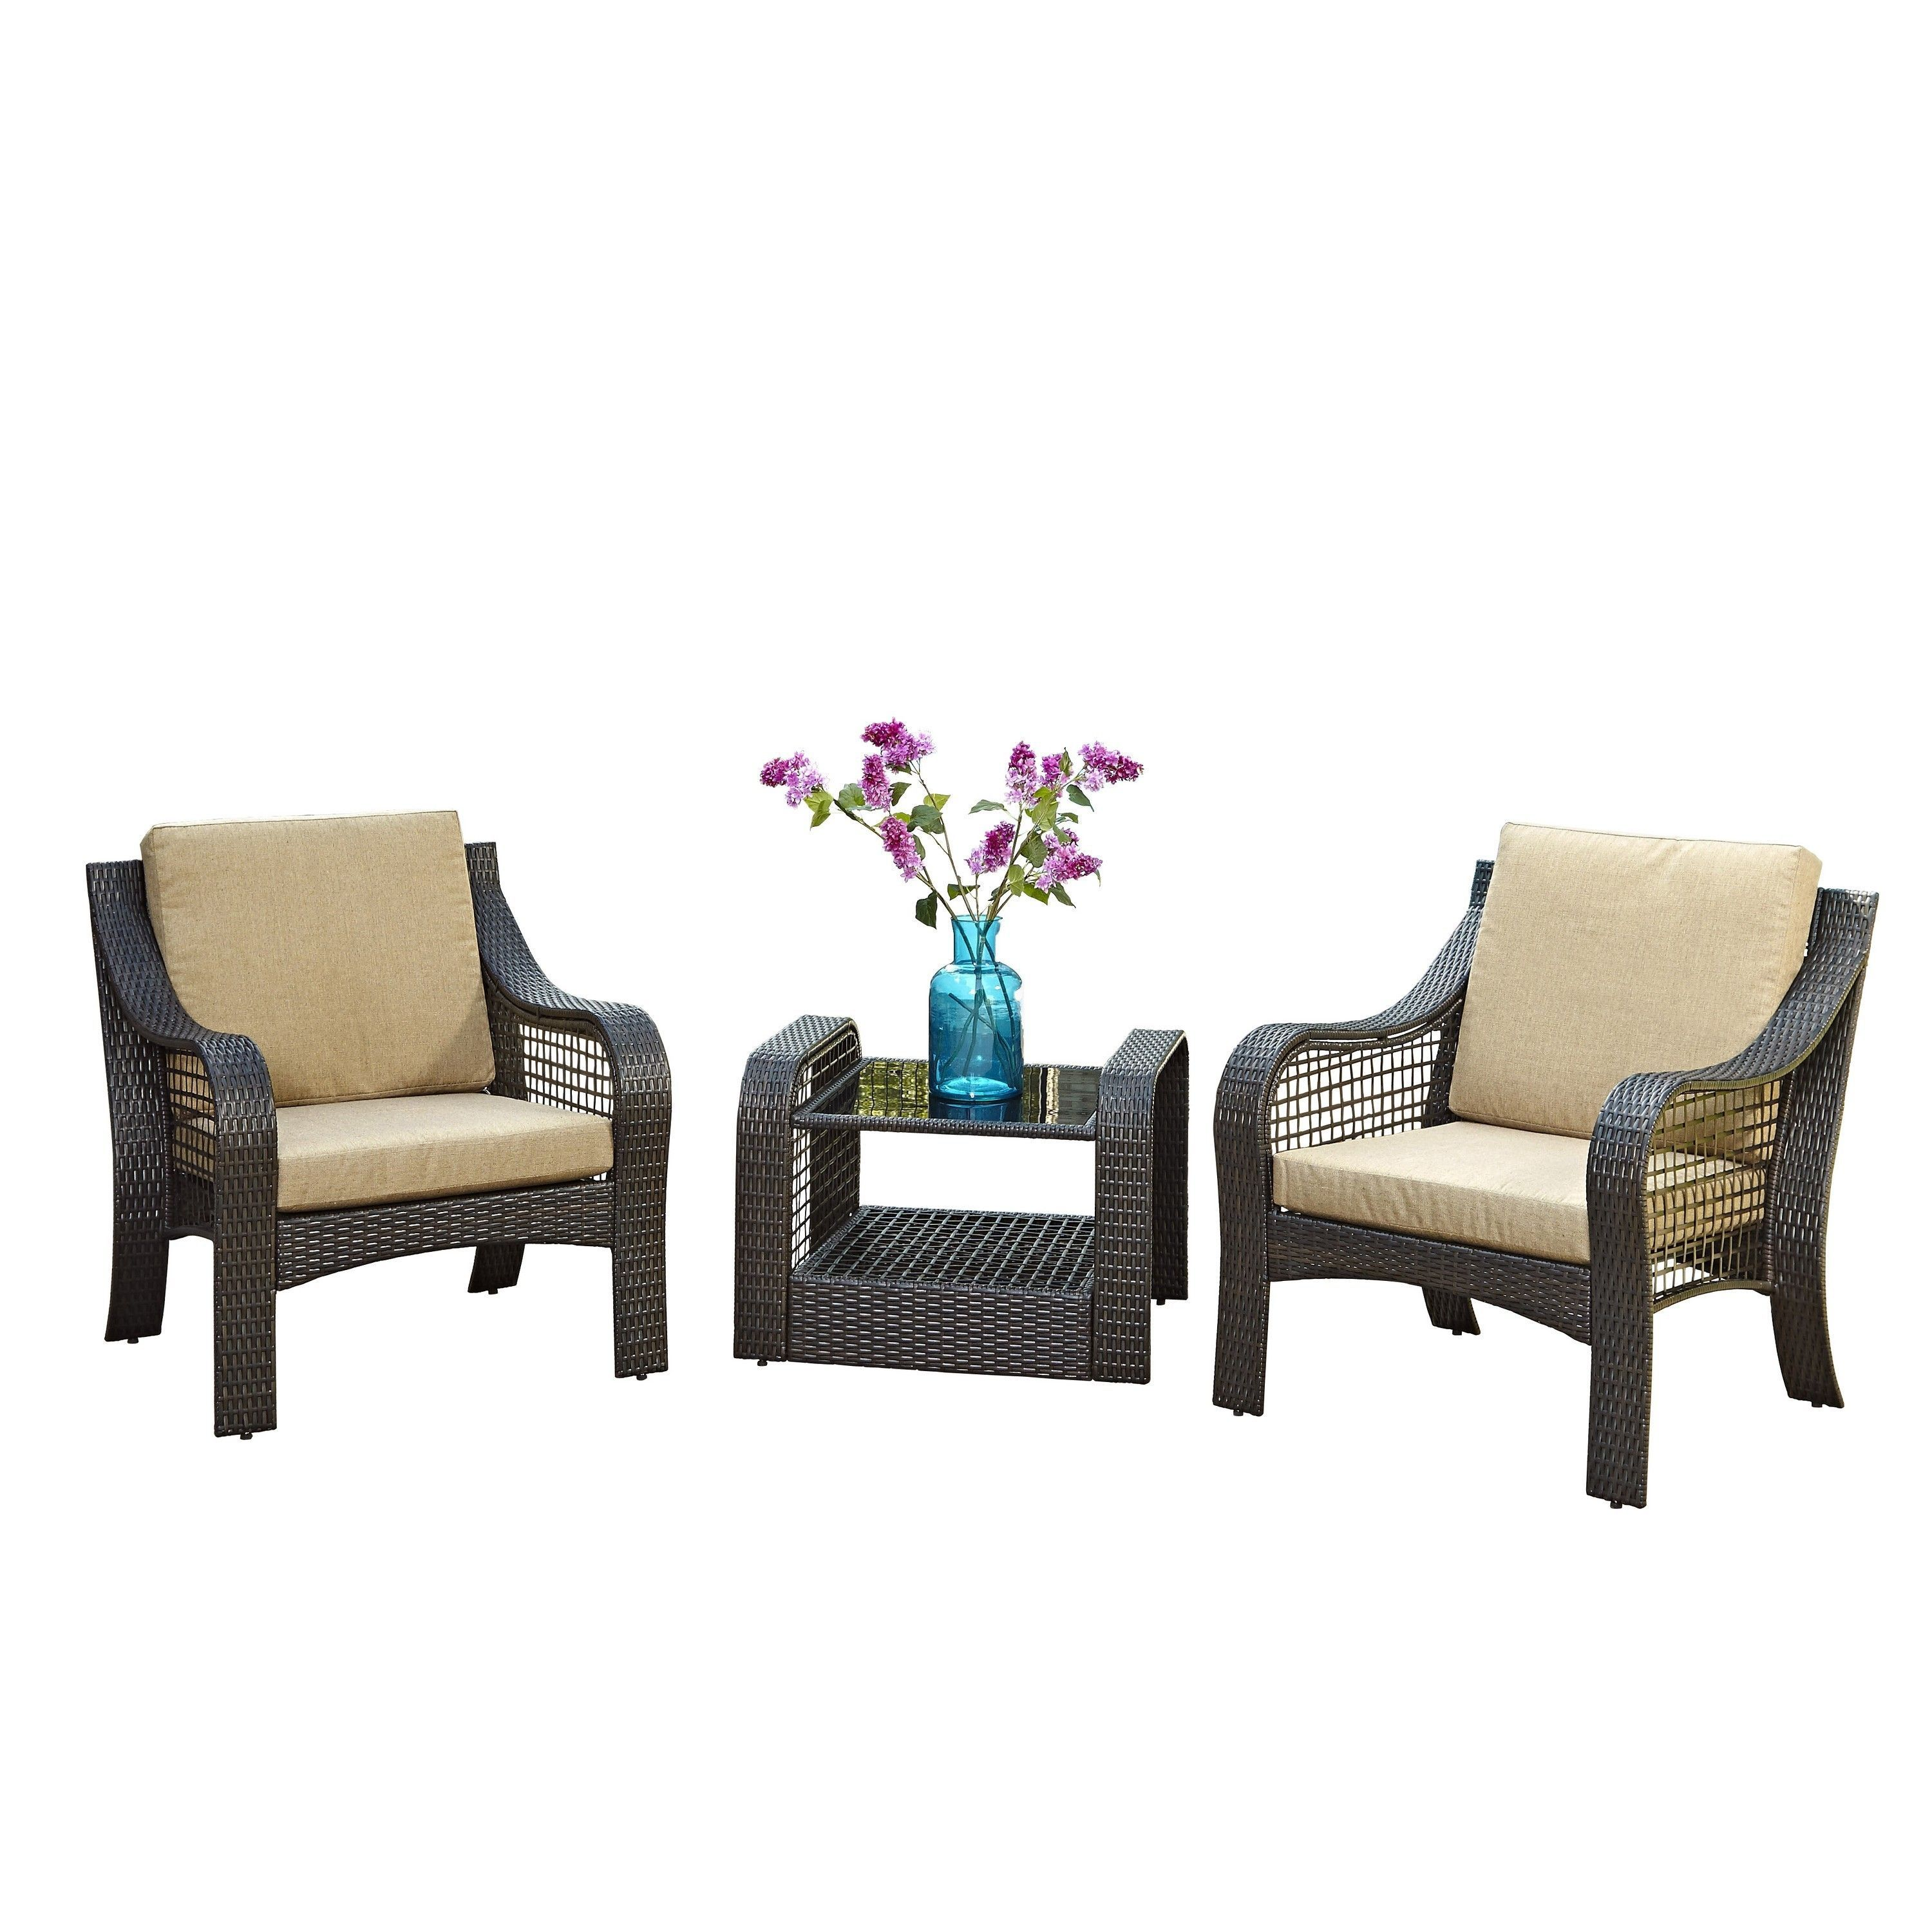 Lanai Breeze Two Accent Chairs And End Table By Home Styles Deep Brown Size 3 Piece Sets Patio Furniture Aluminum